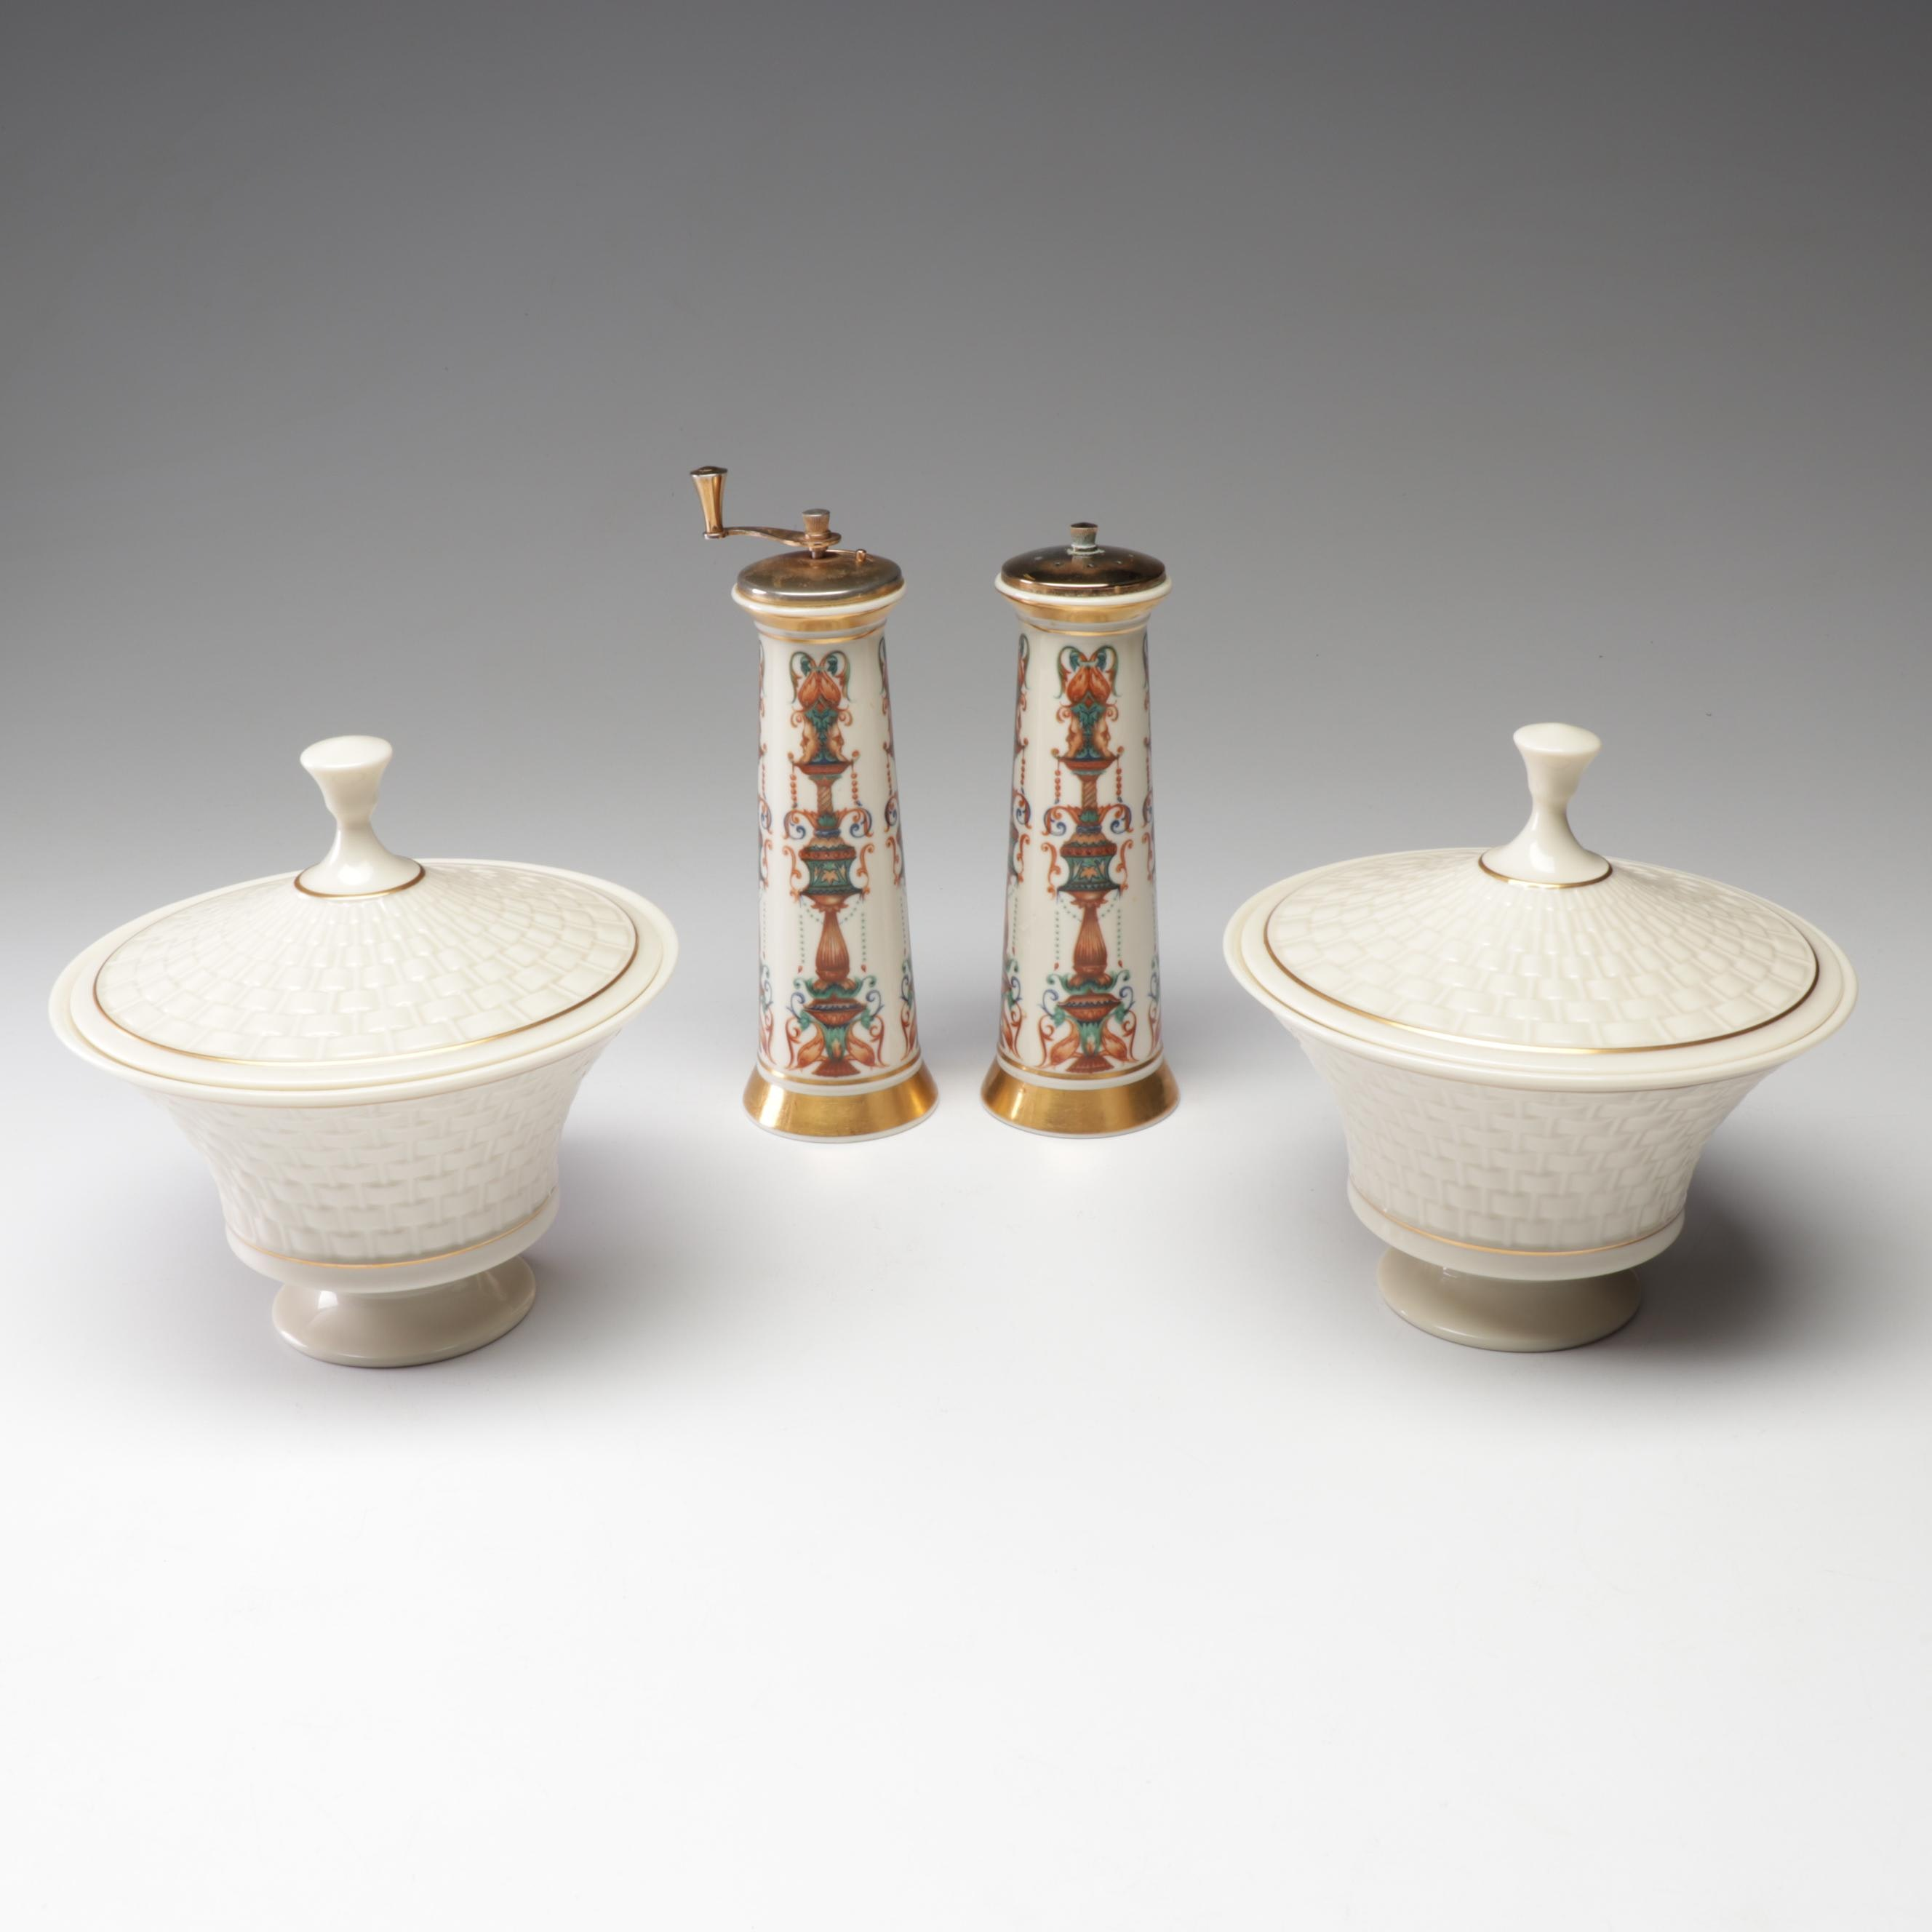 """Lenox """"Lido"""" Salt and Pepper Mills and Porcelain Covered Dishes"""